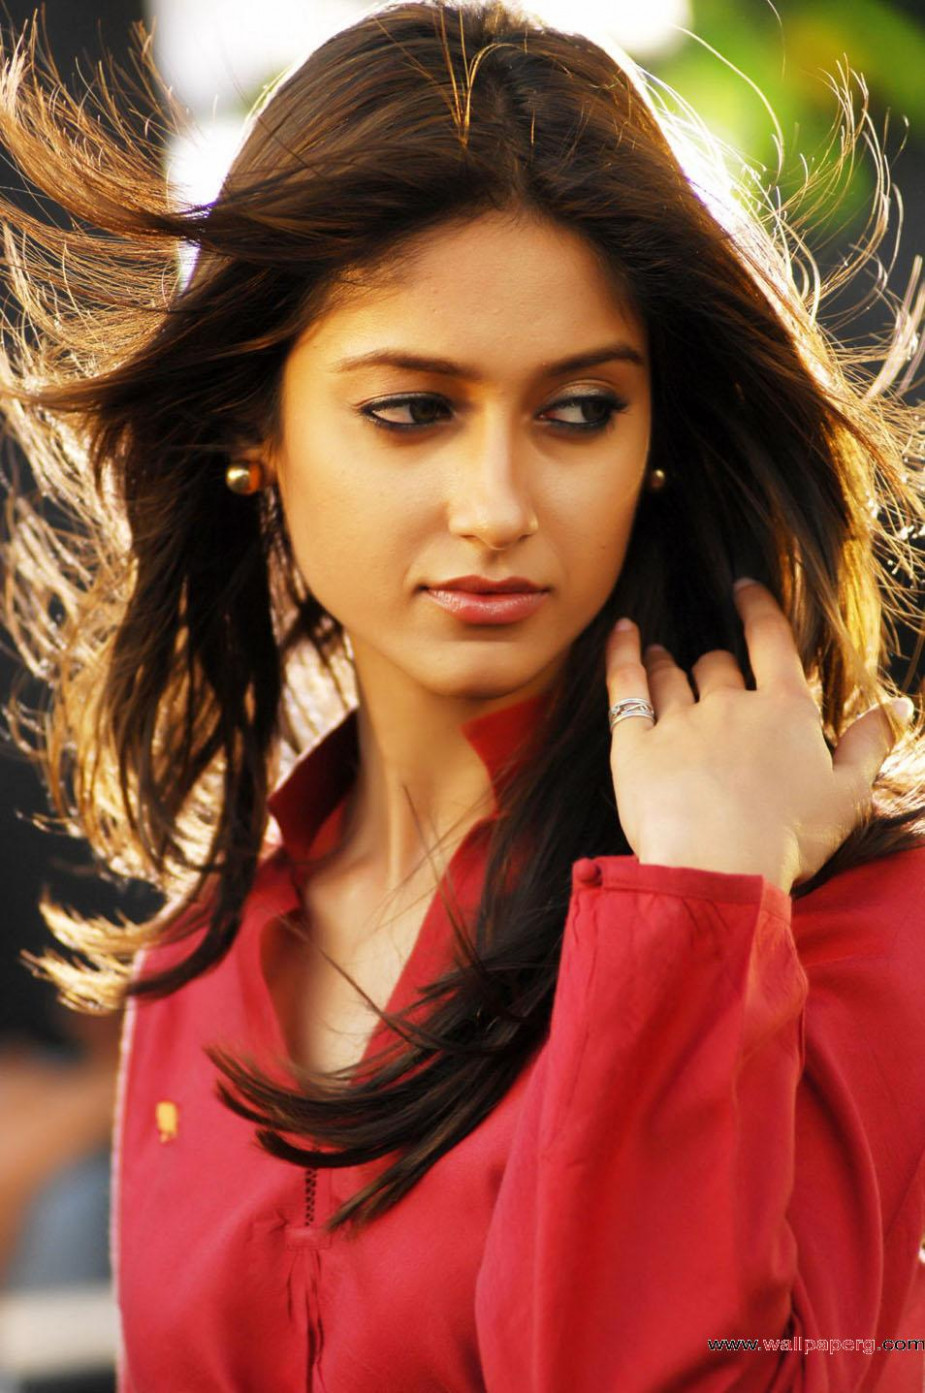 Download Iliana stills 10 - Cool actress images-Mobile Version - bollywood actress wallpaper zip file download